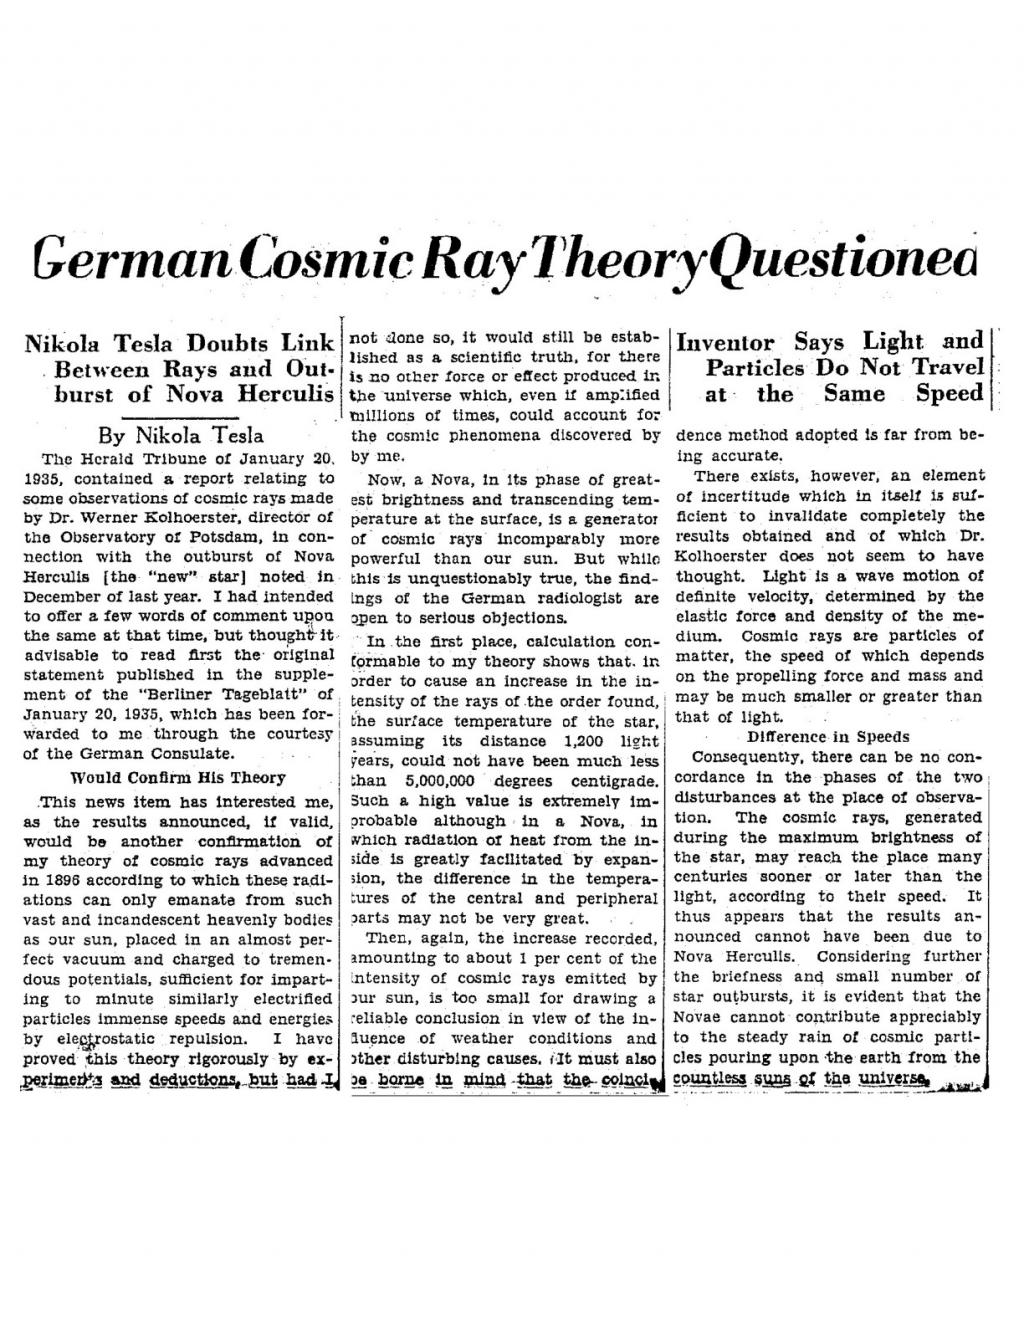 Preview of German Cosmic Ray Theory Questioned article